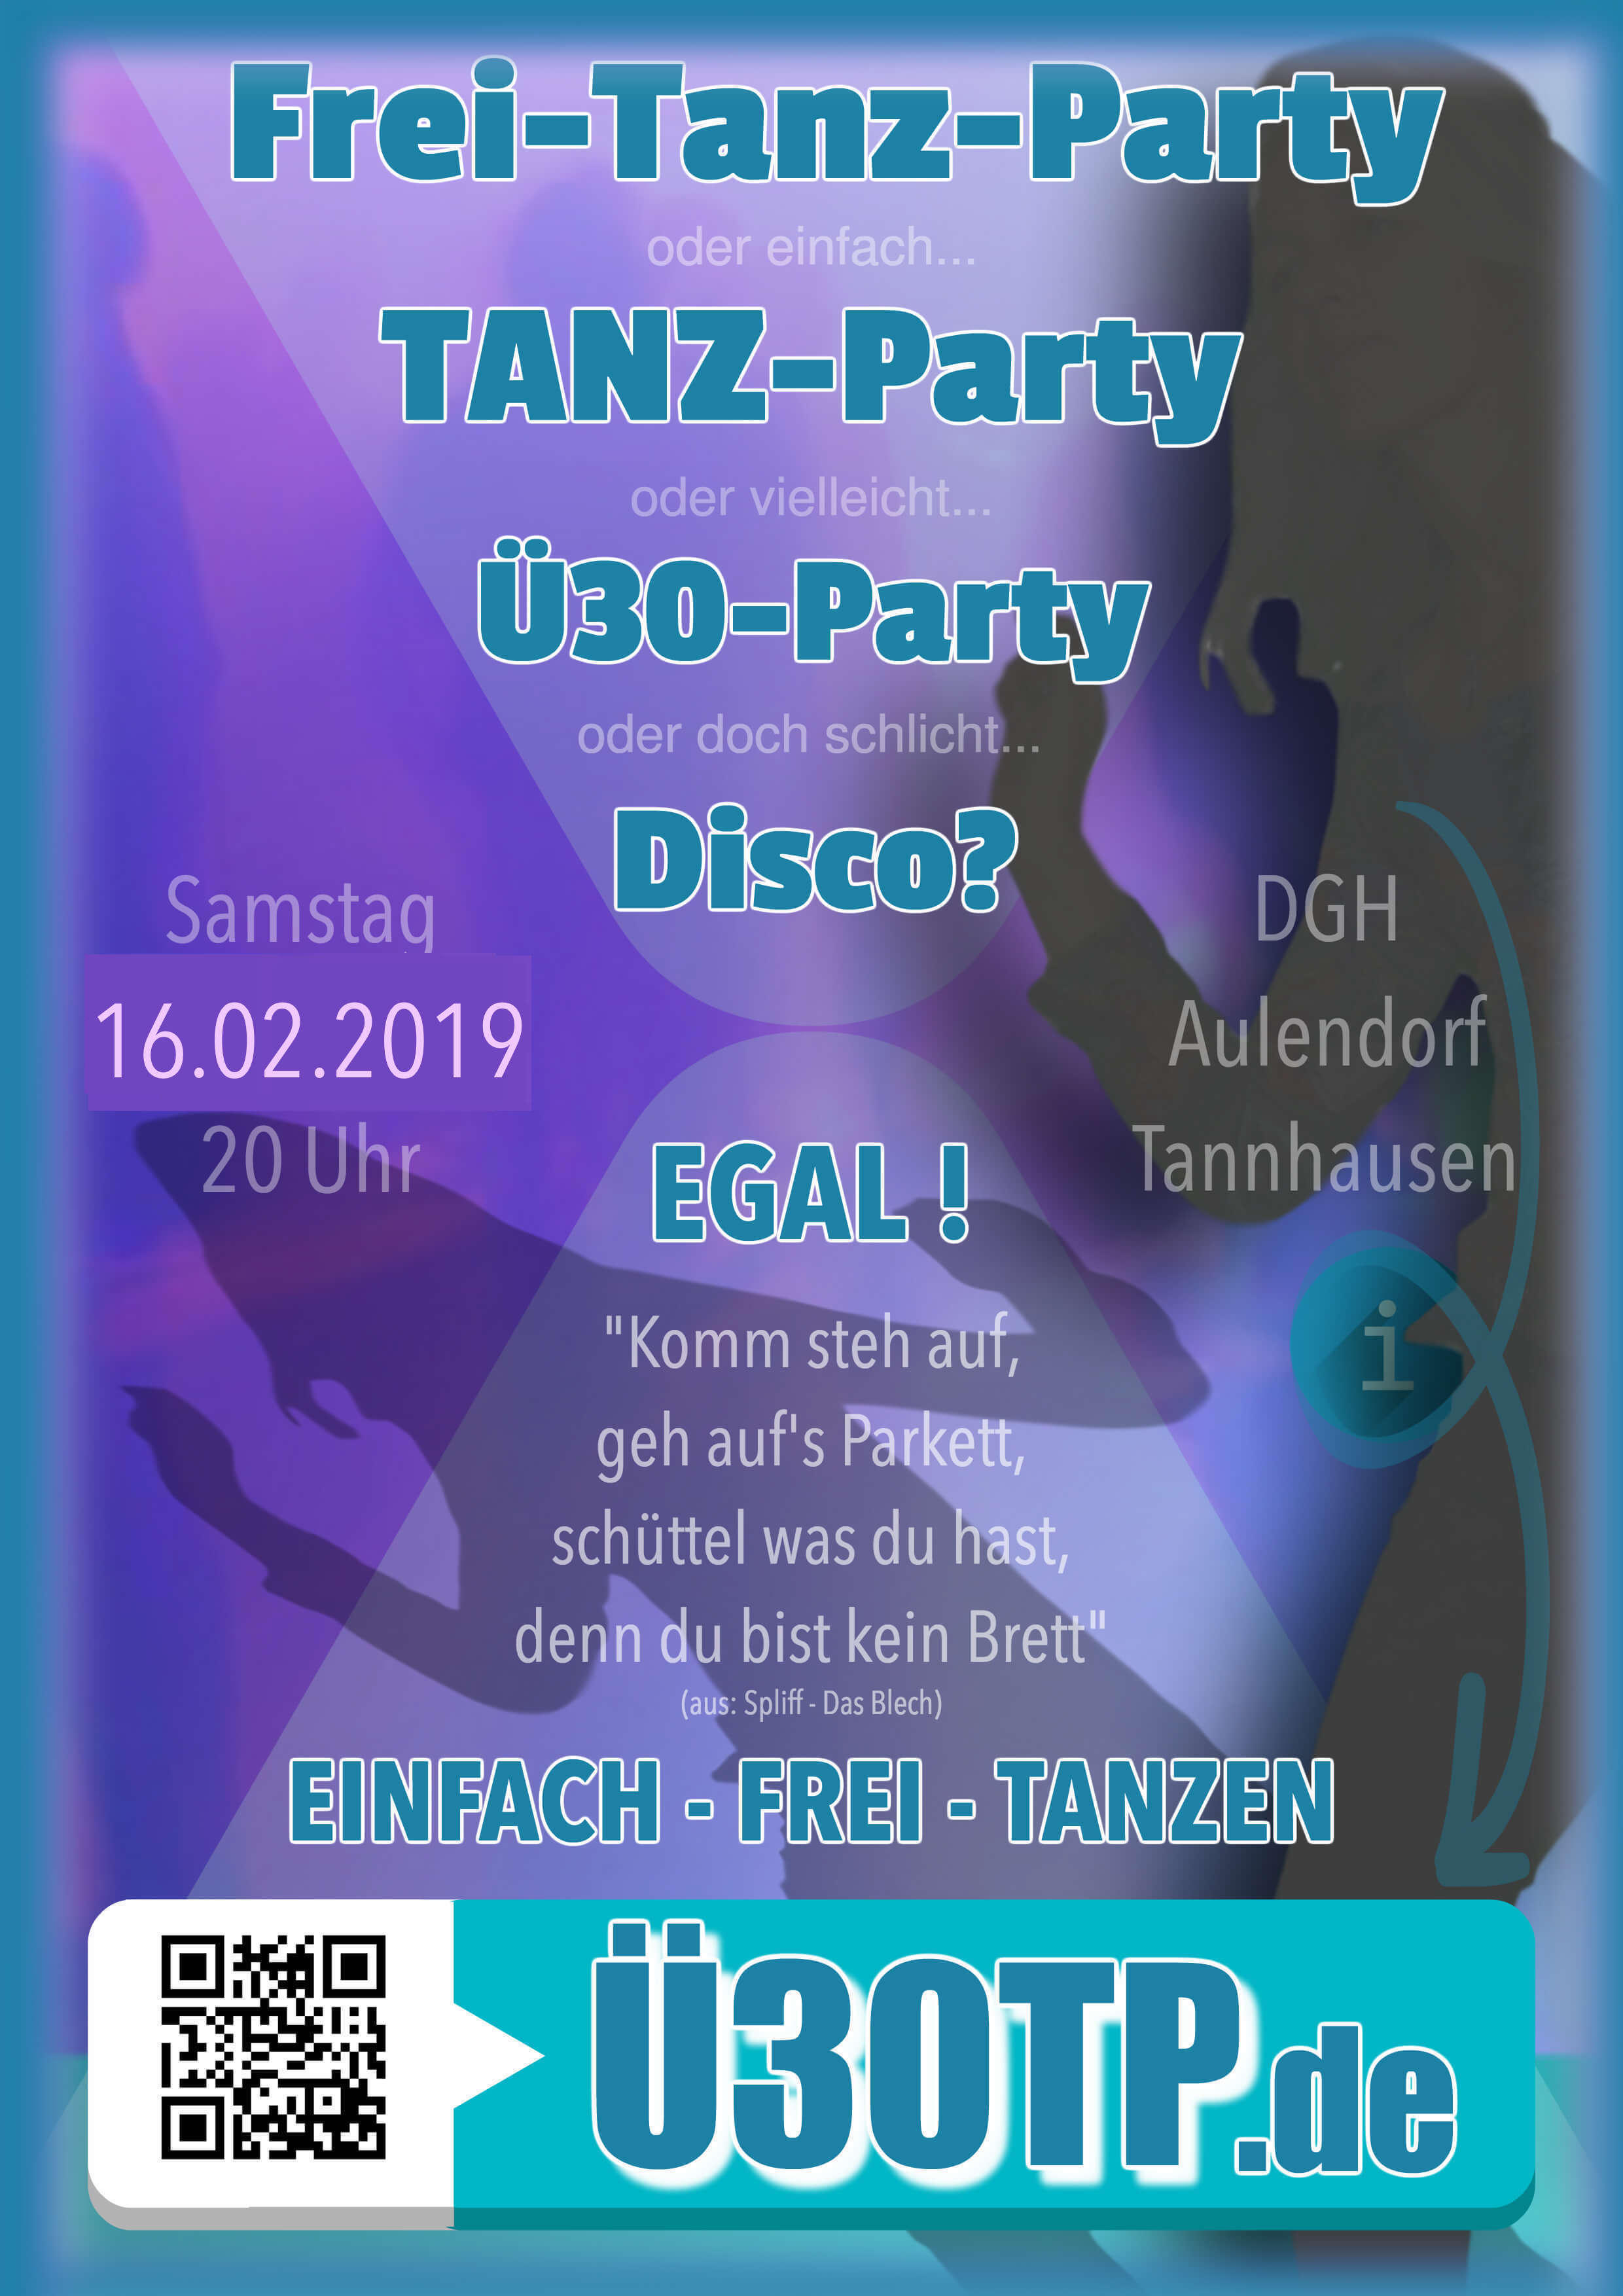 Flyer Tanzparty zum Download